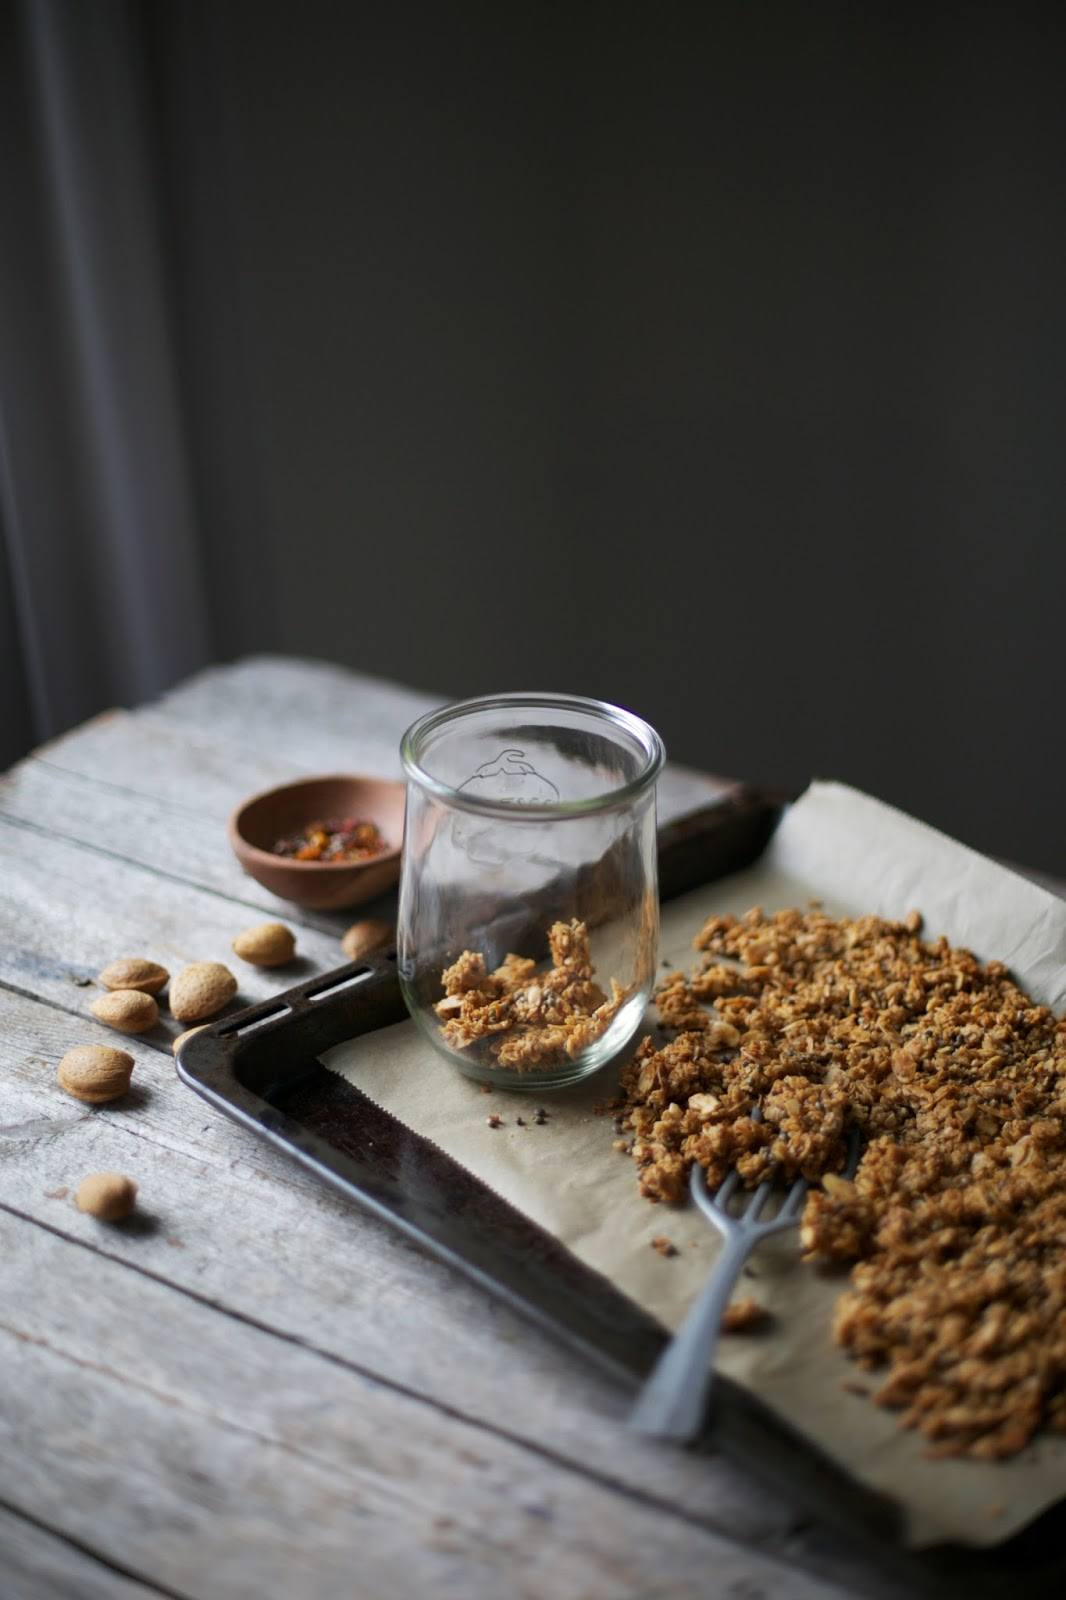 Gluten-free Granola with Almonds, Hempseeds and dried Physalis